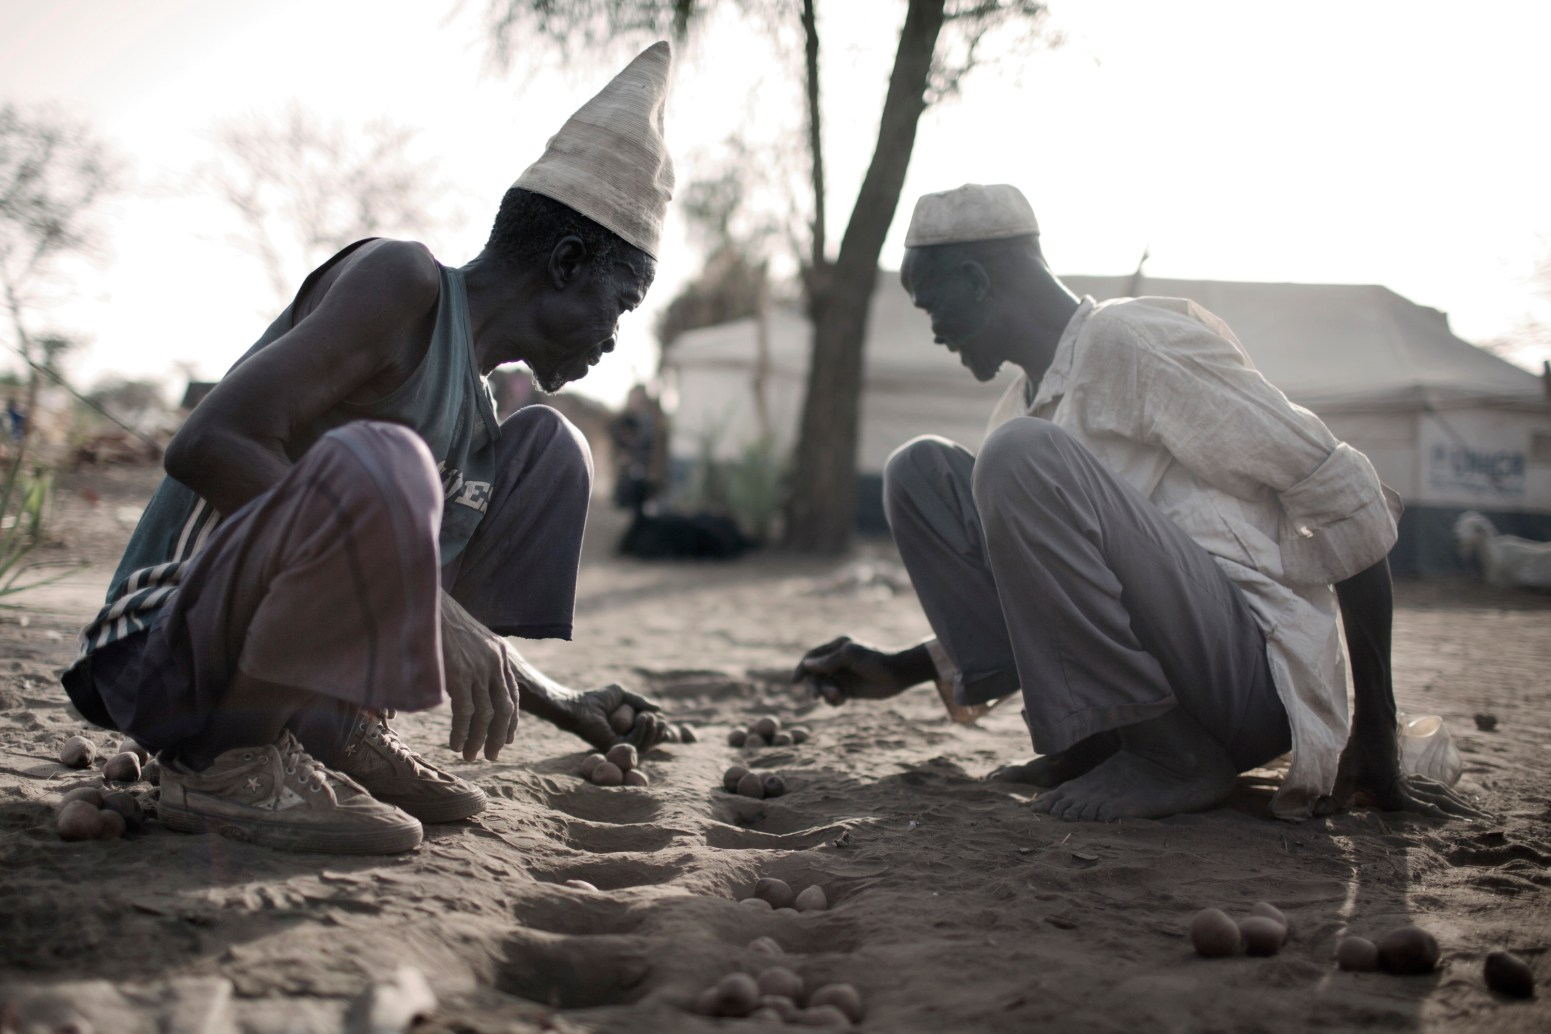 Two elderly men playing a game, possibly Mancala, on the dusty ground in Doro refugee camp.